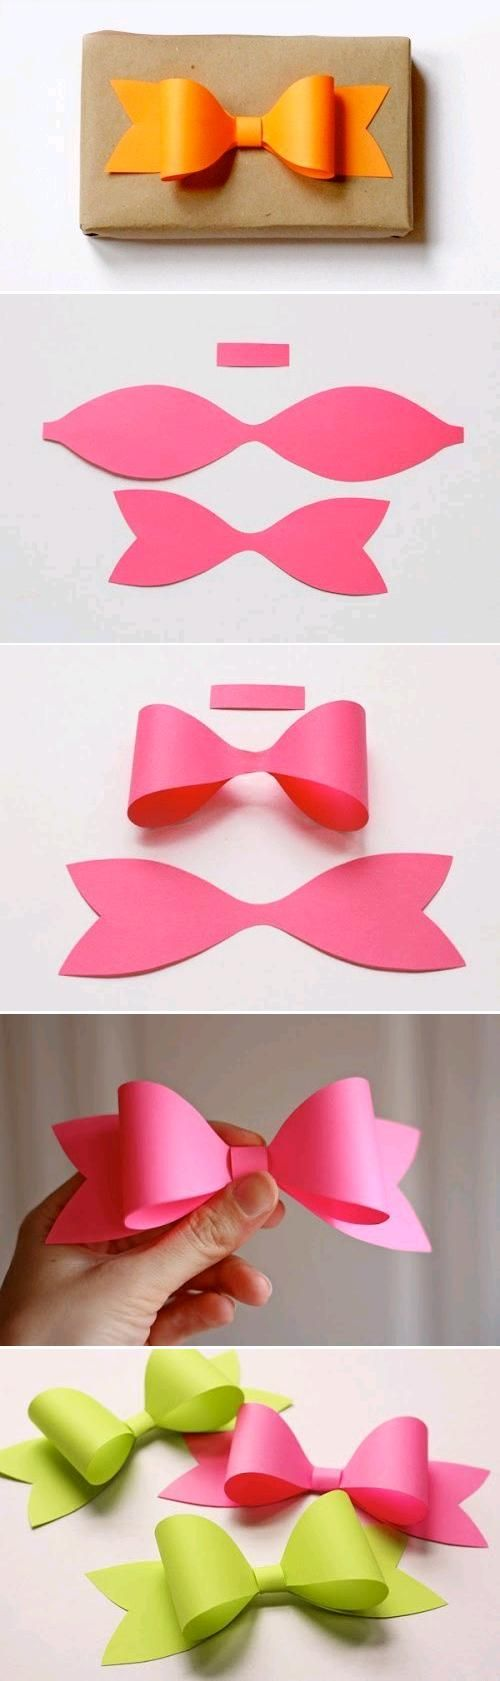 DIY How to make a bow